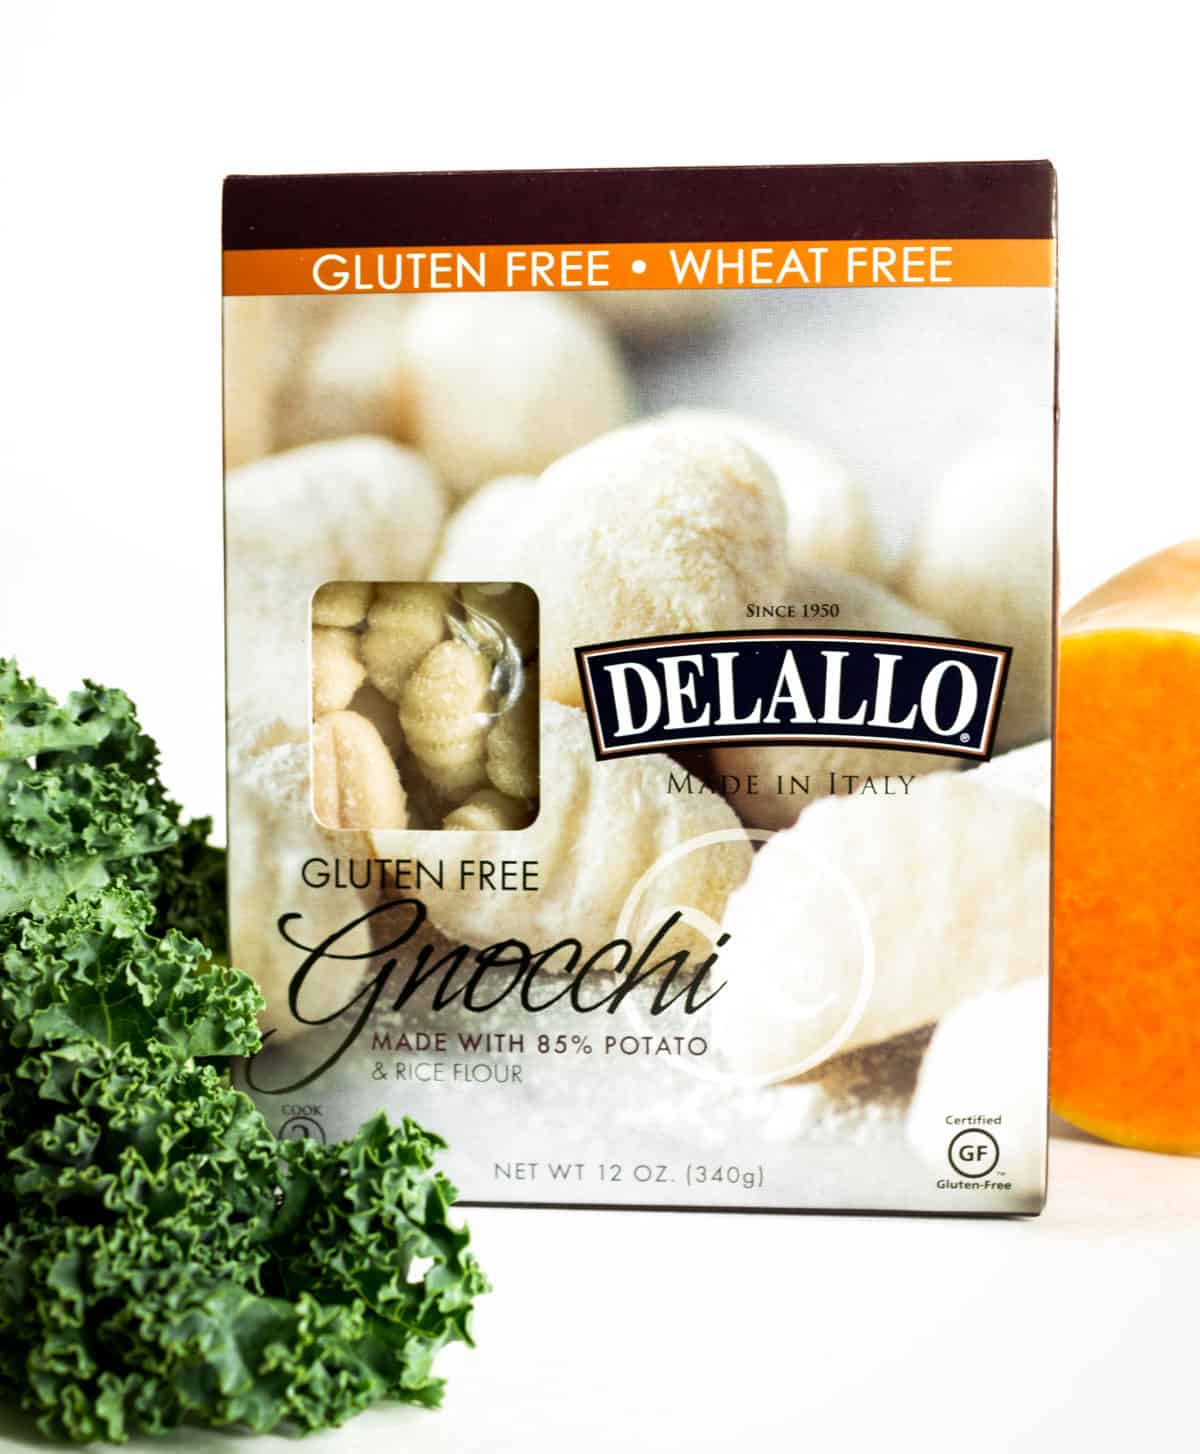 A box of gluten free Delallo brand gnocchi sits next to some green kale and a butternut squash.